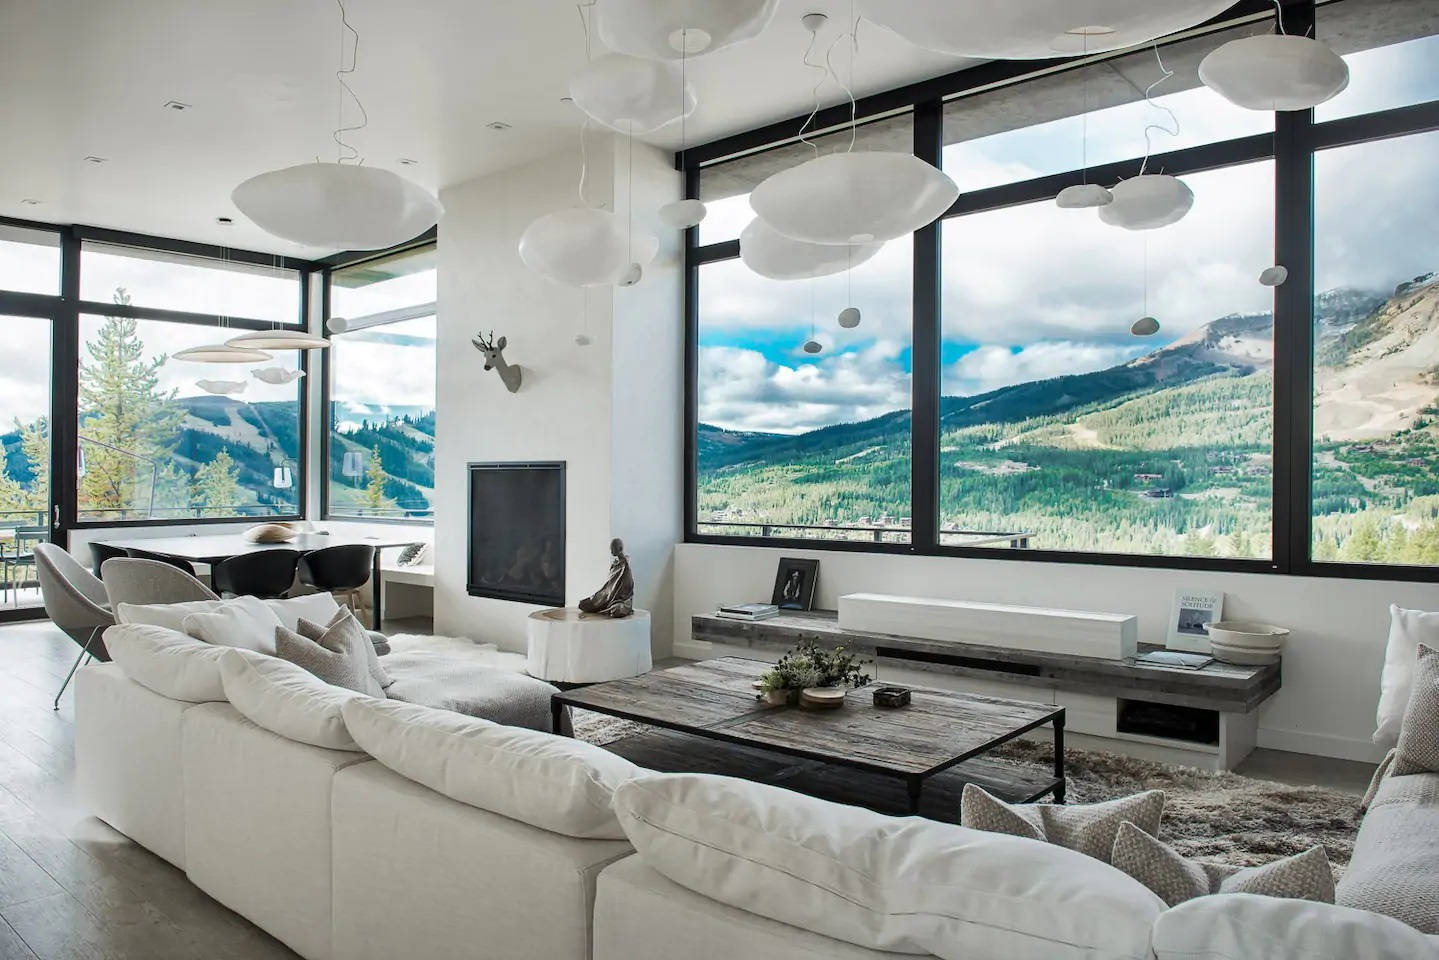 Photo of an Airbnb in Big Sky, Montana.